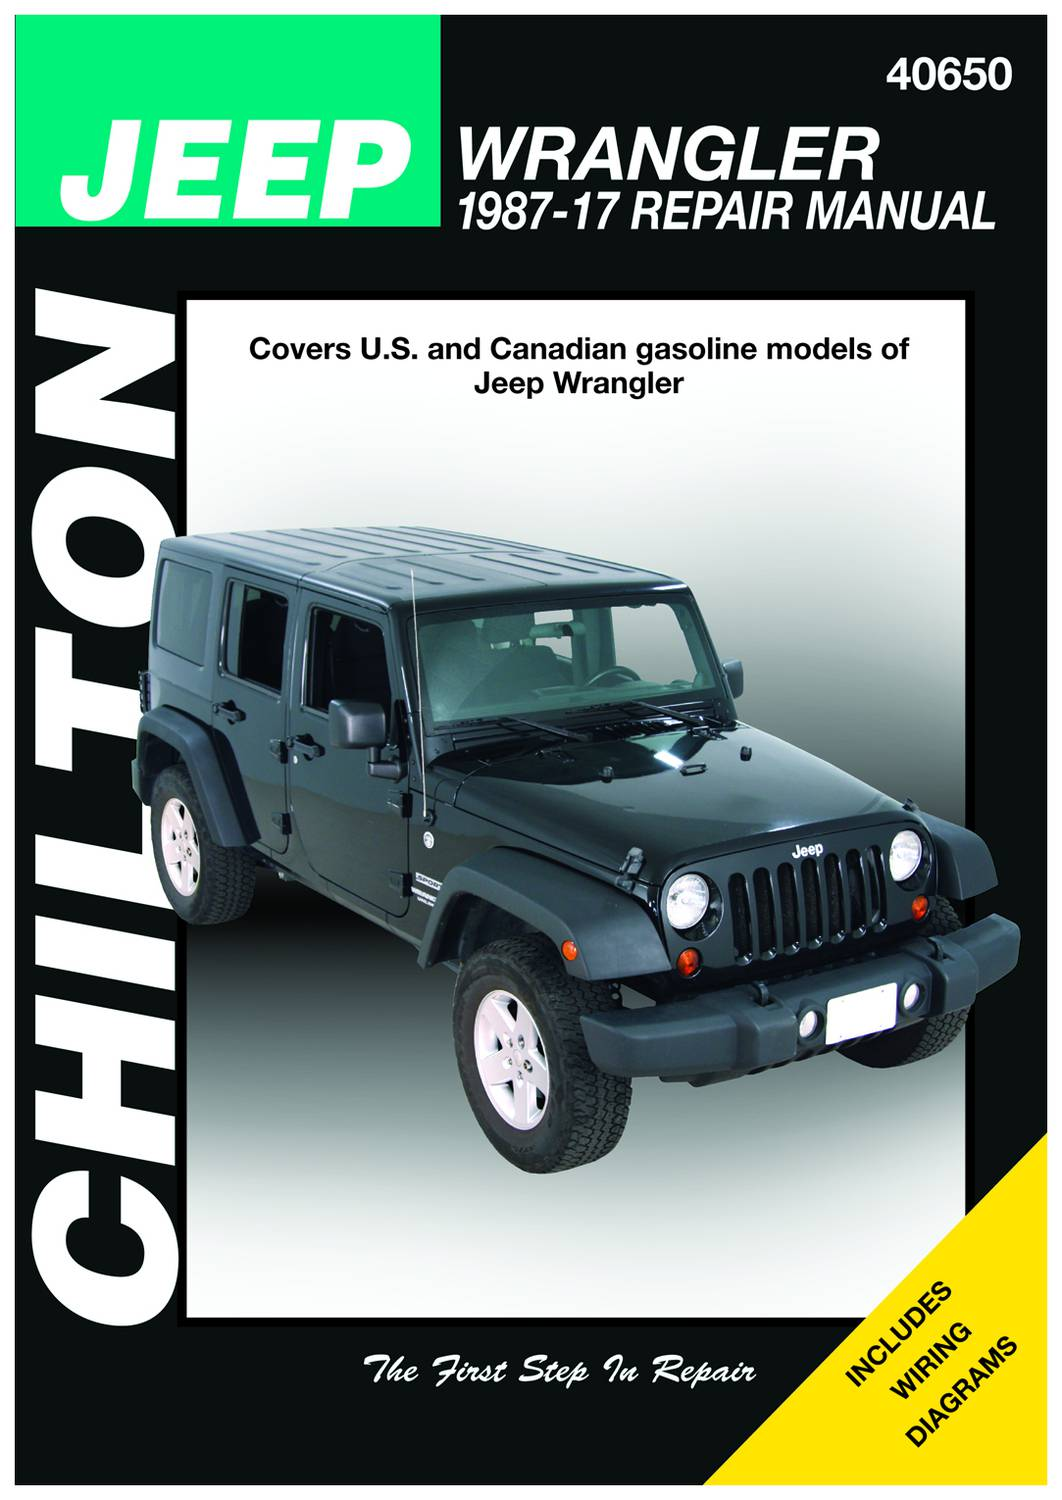 2013 Jeep Wrangler Owners Manual : wrangler, owners, manual, Chilton, 87-17, Wrangler, Technical, Specification, 40650